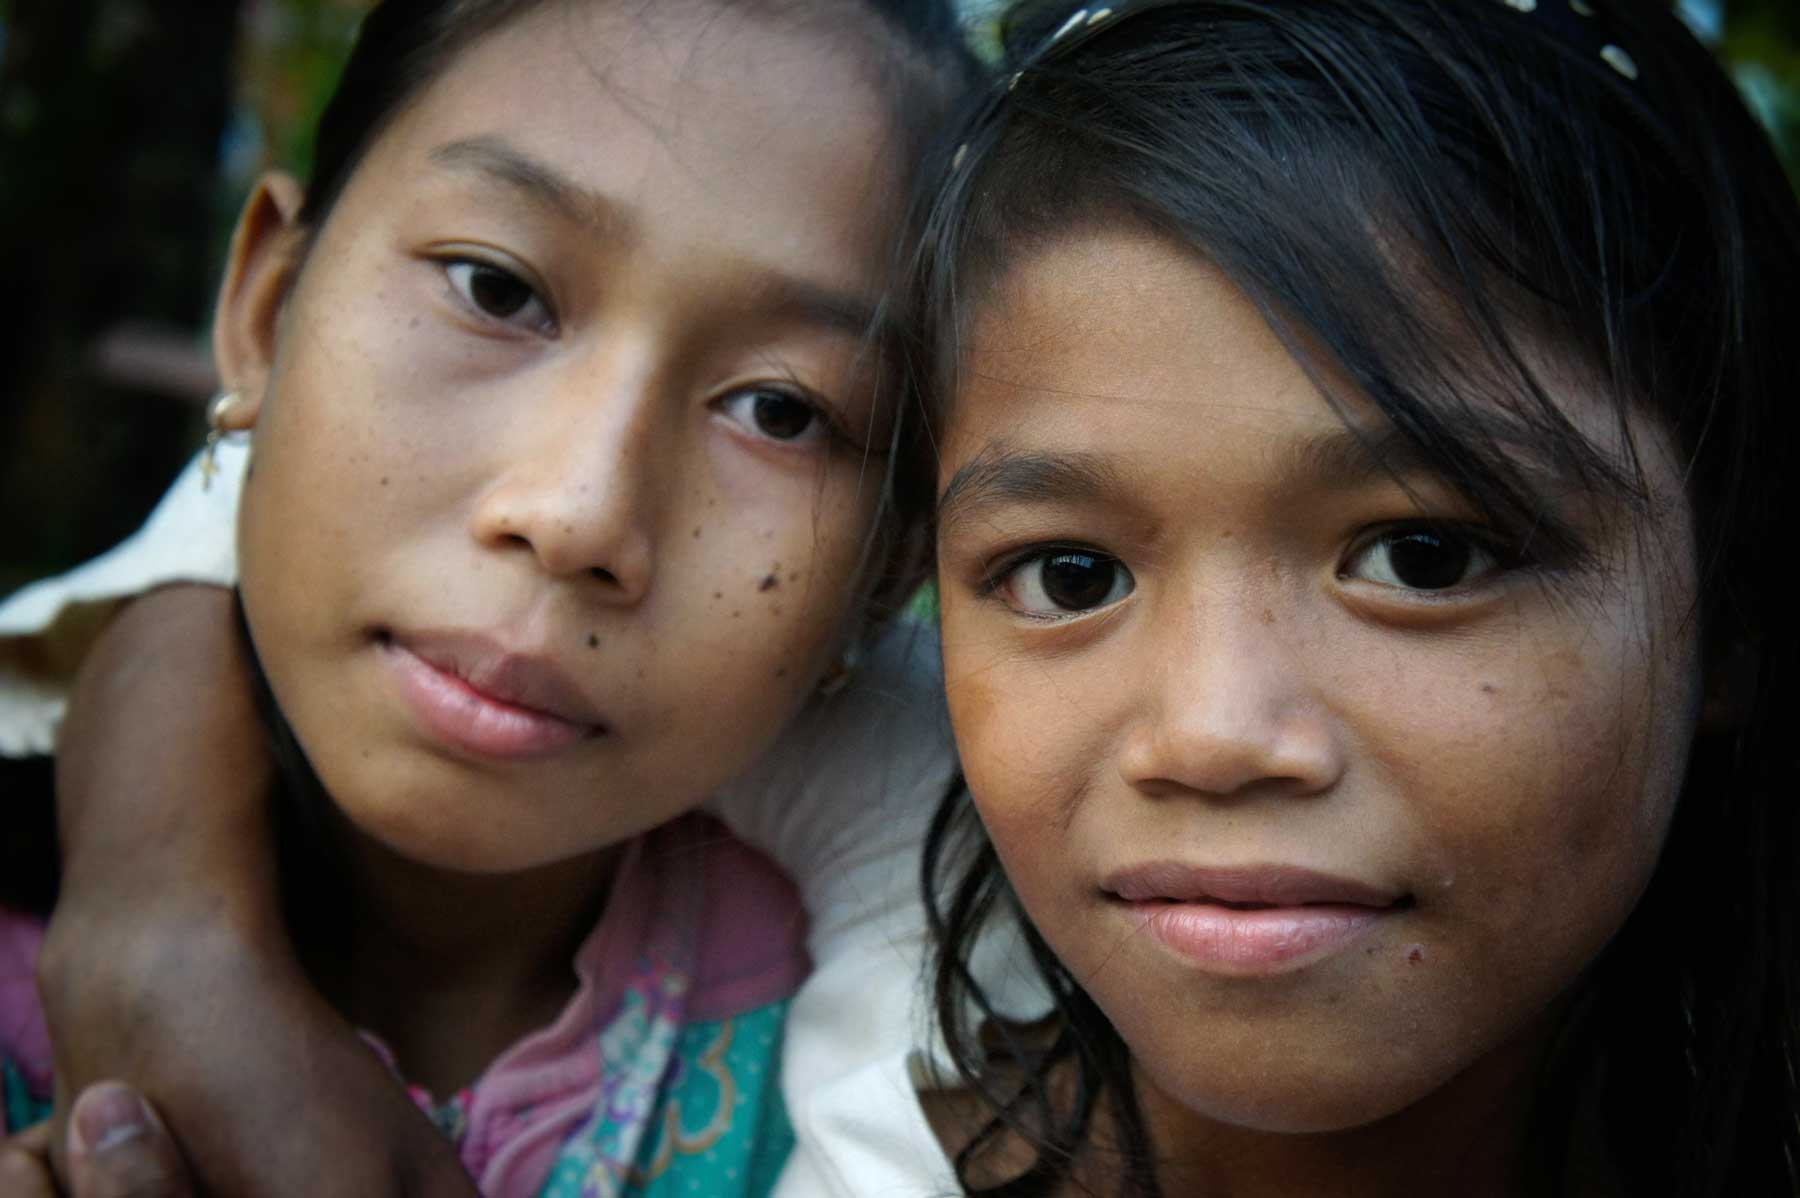 Two little girls in Cambodia living under protection in our child protection center in Battambang.